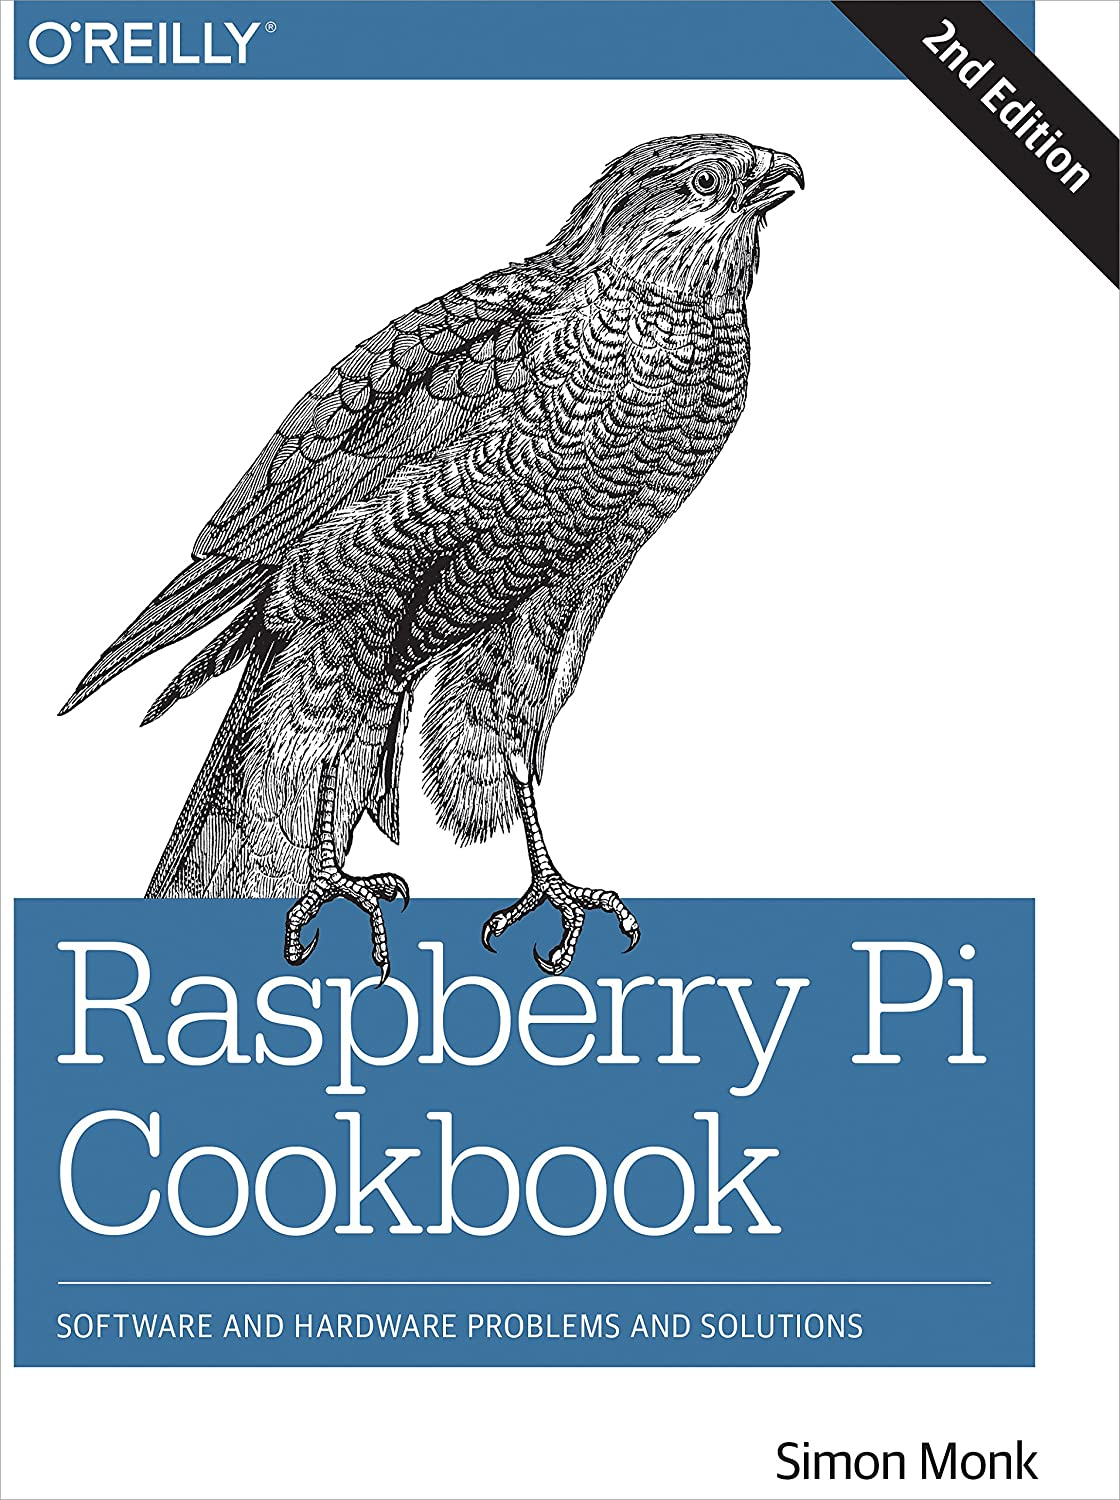 Raspberry Pi Cookbook: Software and Hardware Problems